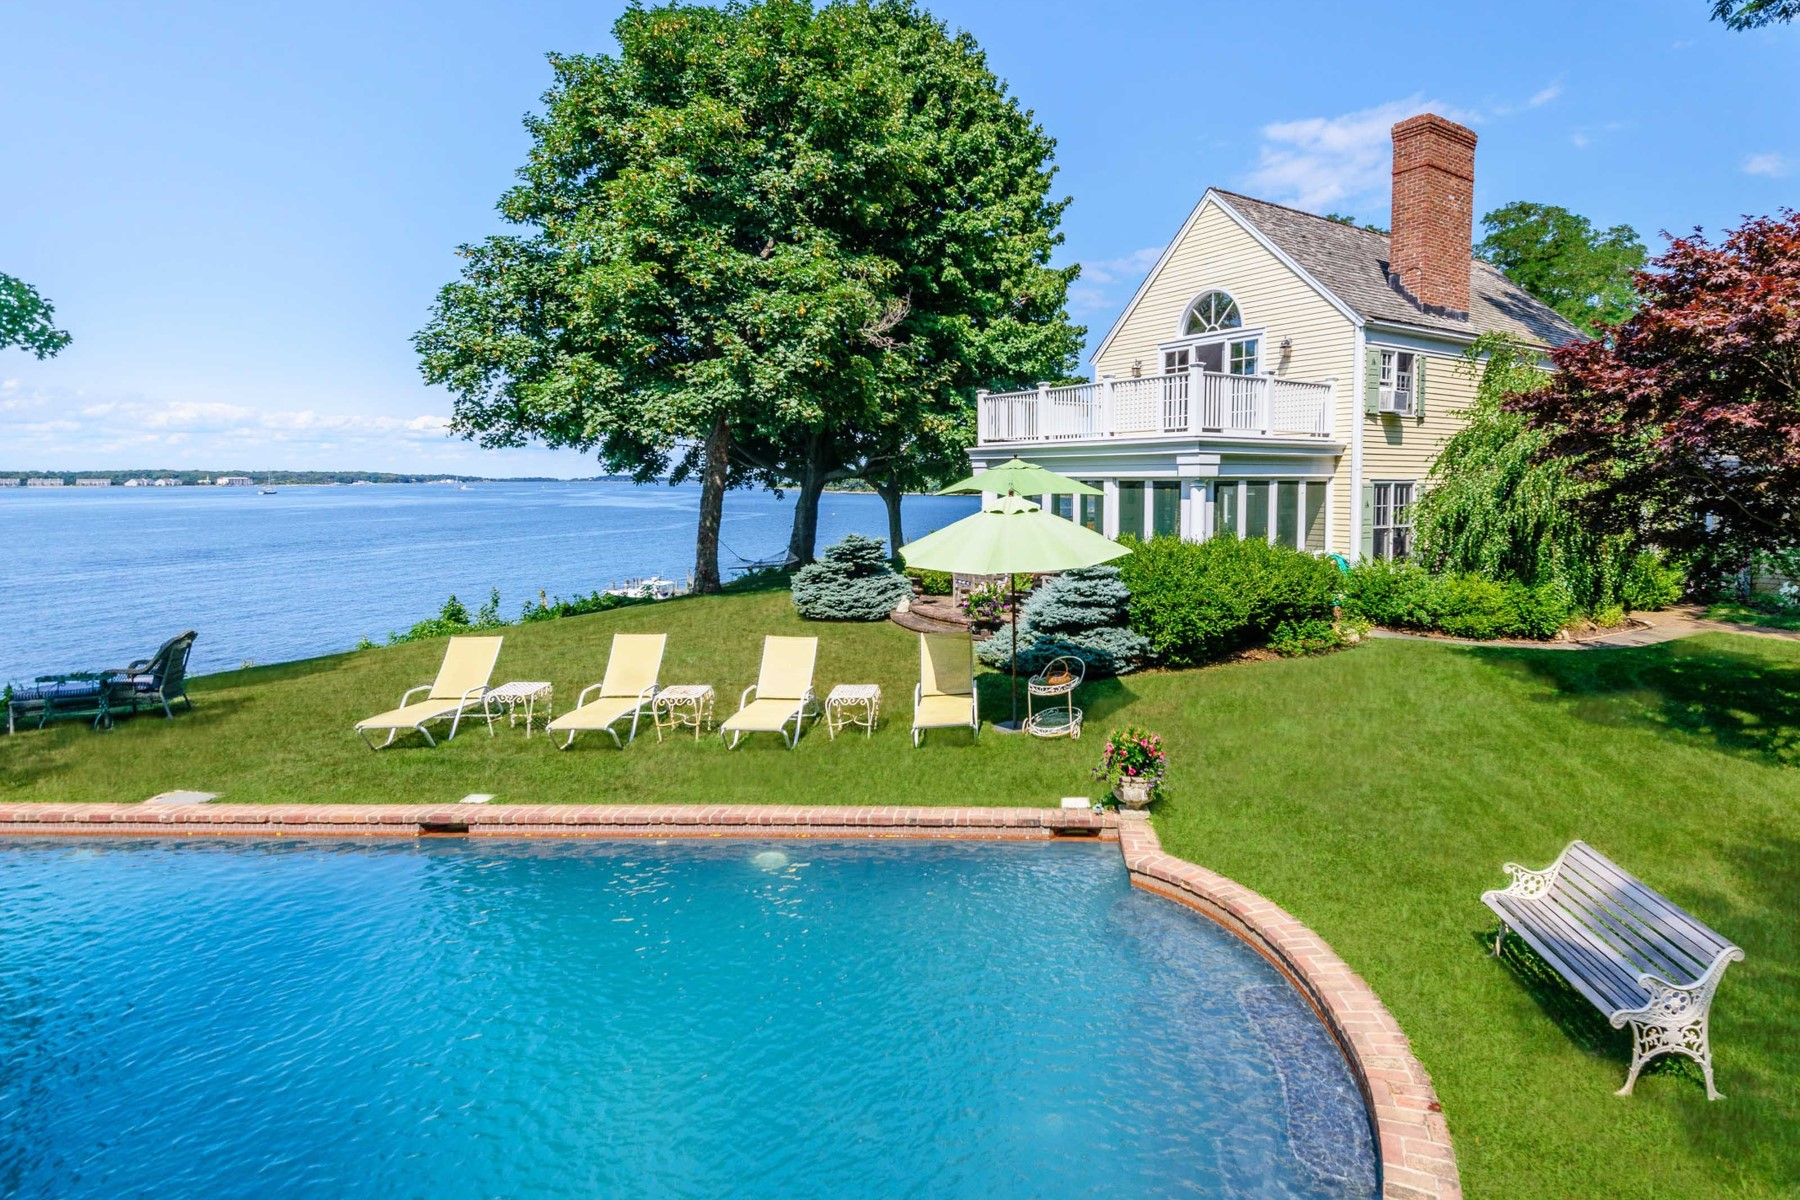 Single Family Home for Sale at Exquisite Dering Harbor Estate 27 Shore Road Shelter Island, New York 11965 United States